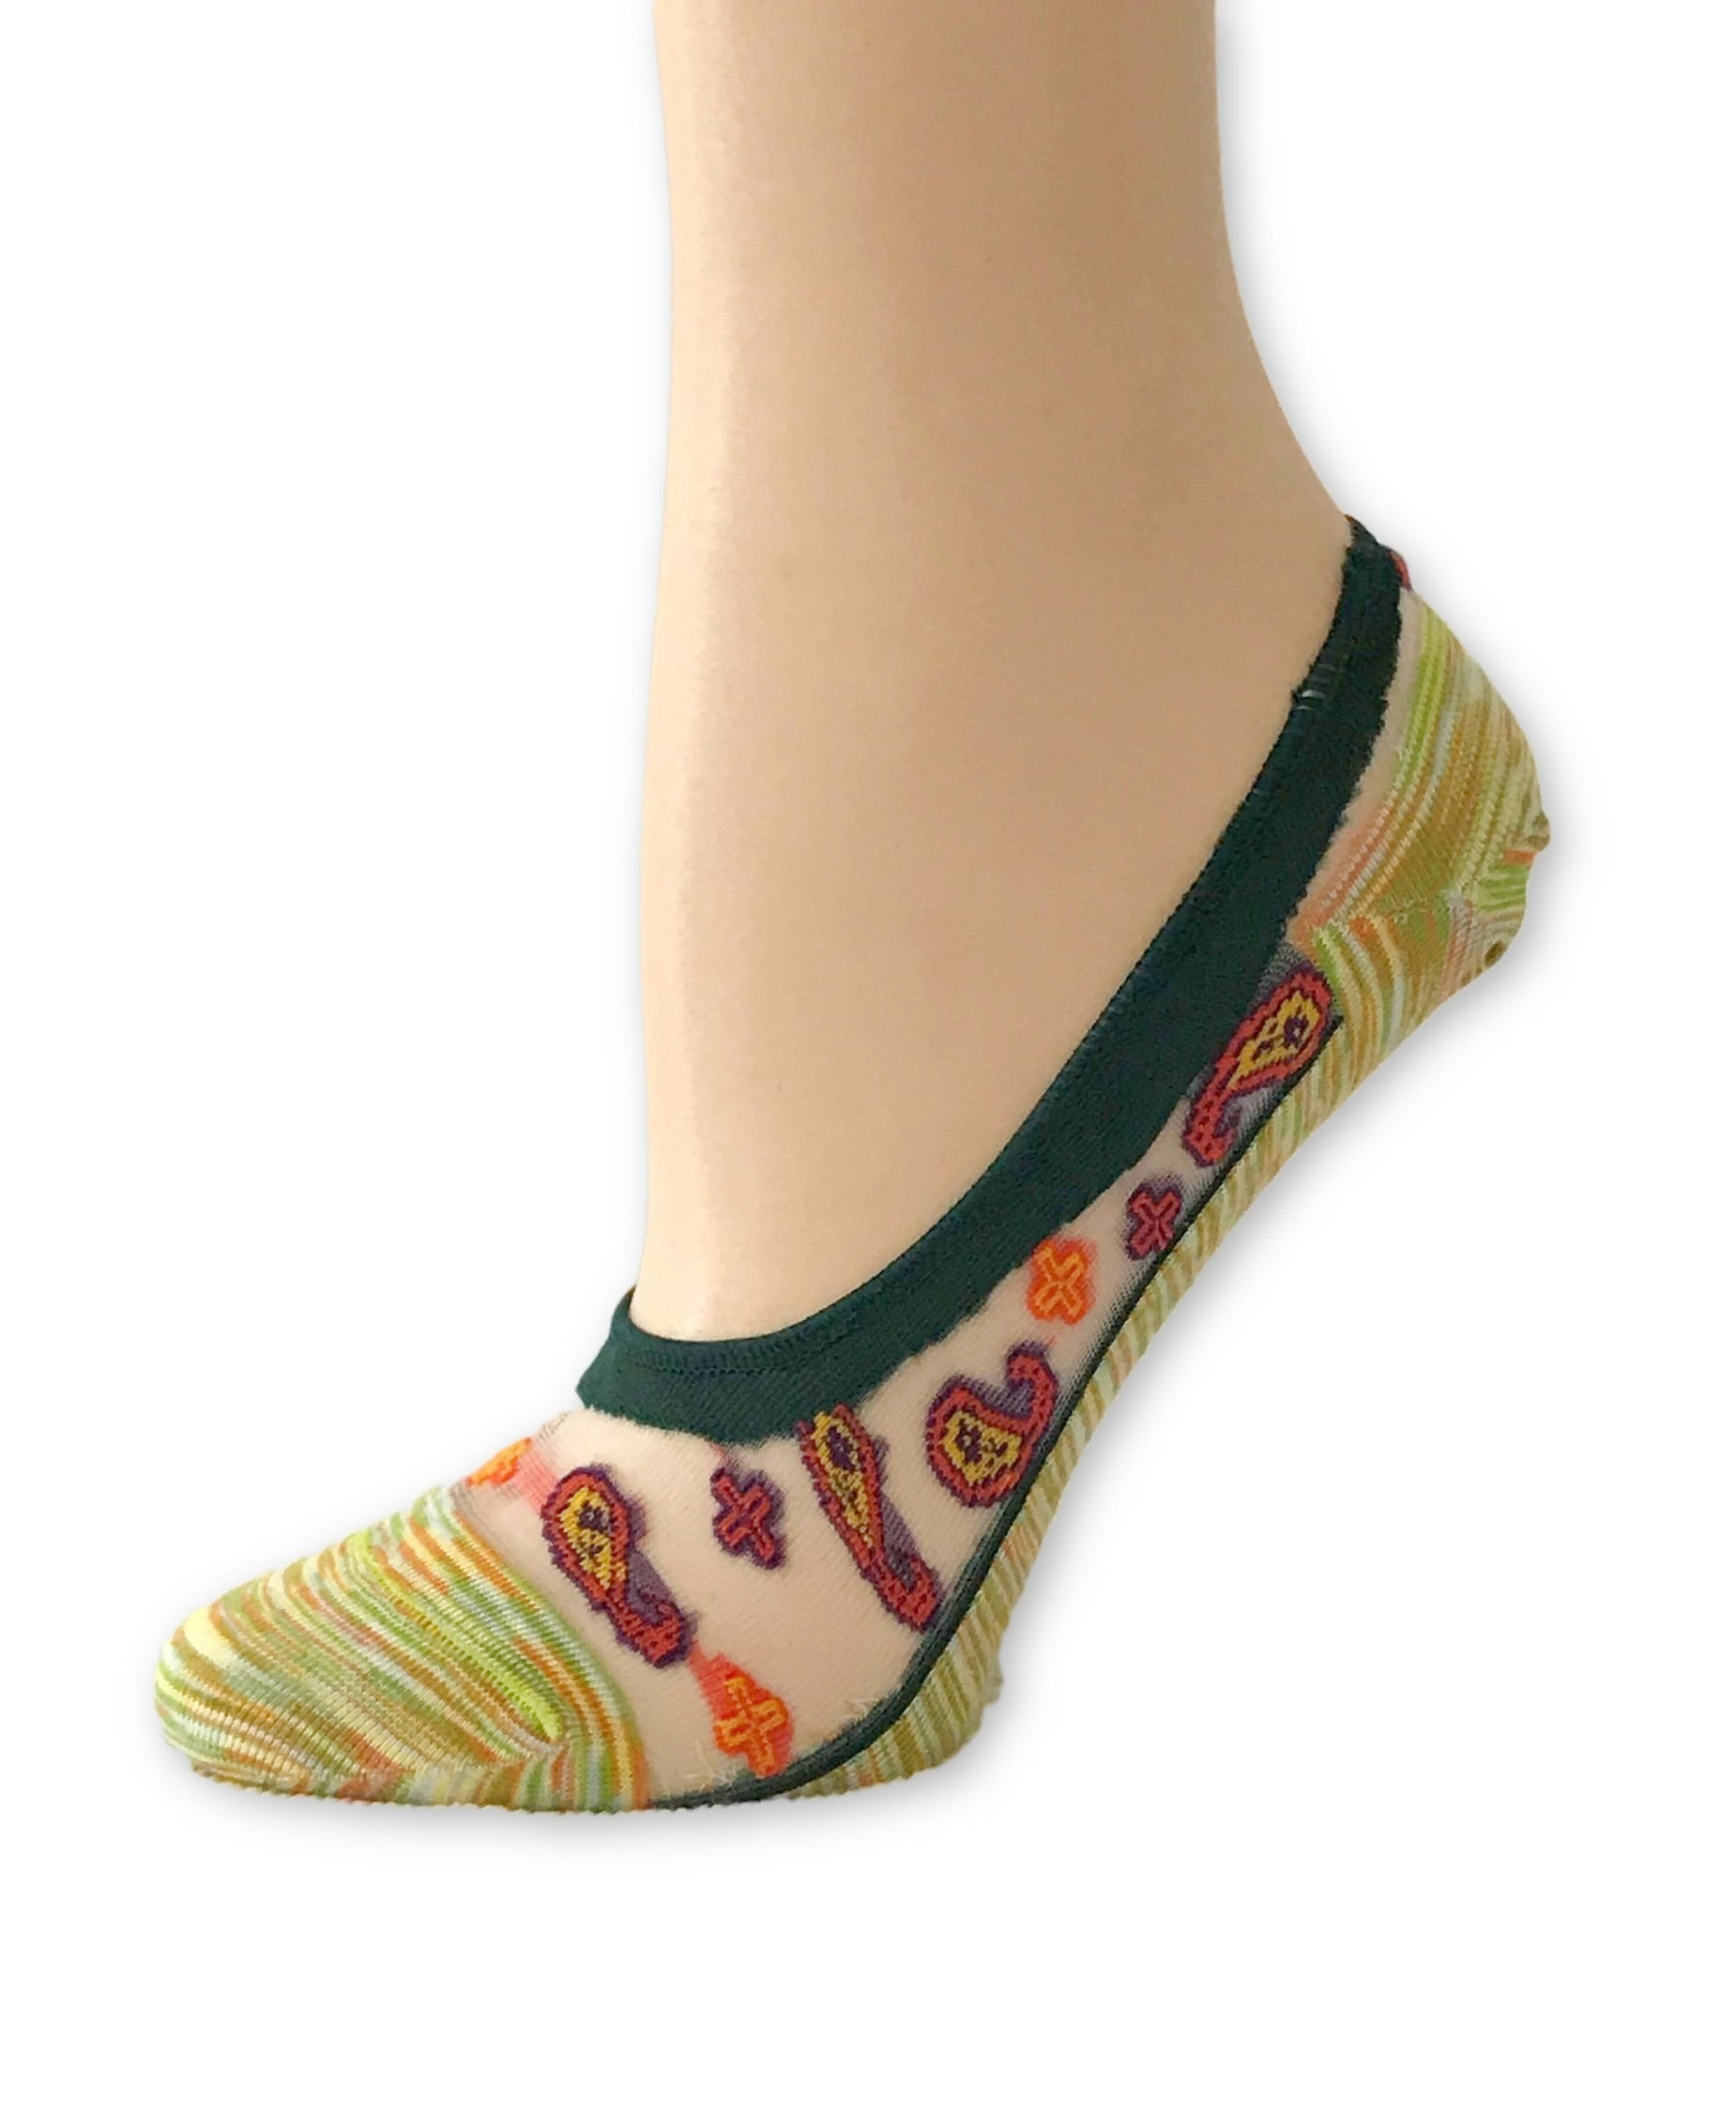 Amber Yellow Patterned Ankle Sheer Socks - Global Trendz Fashion®